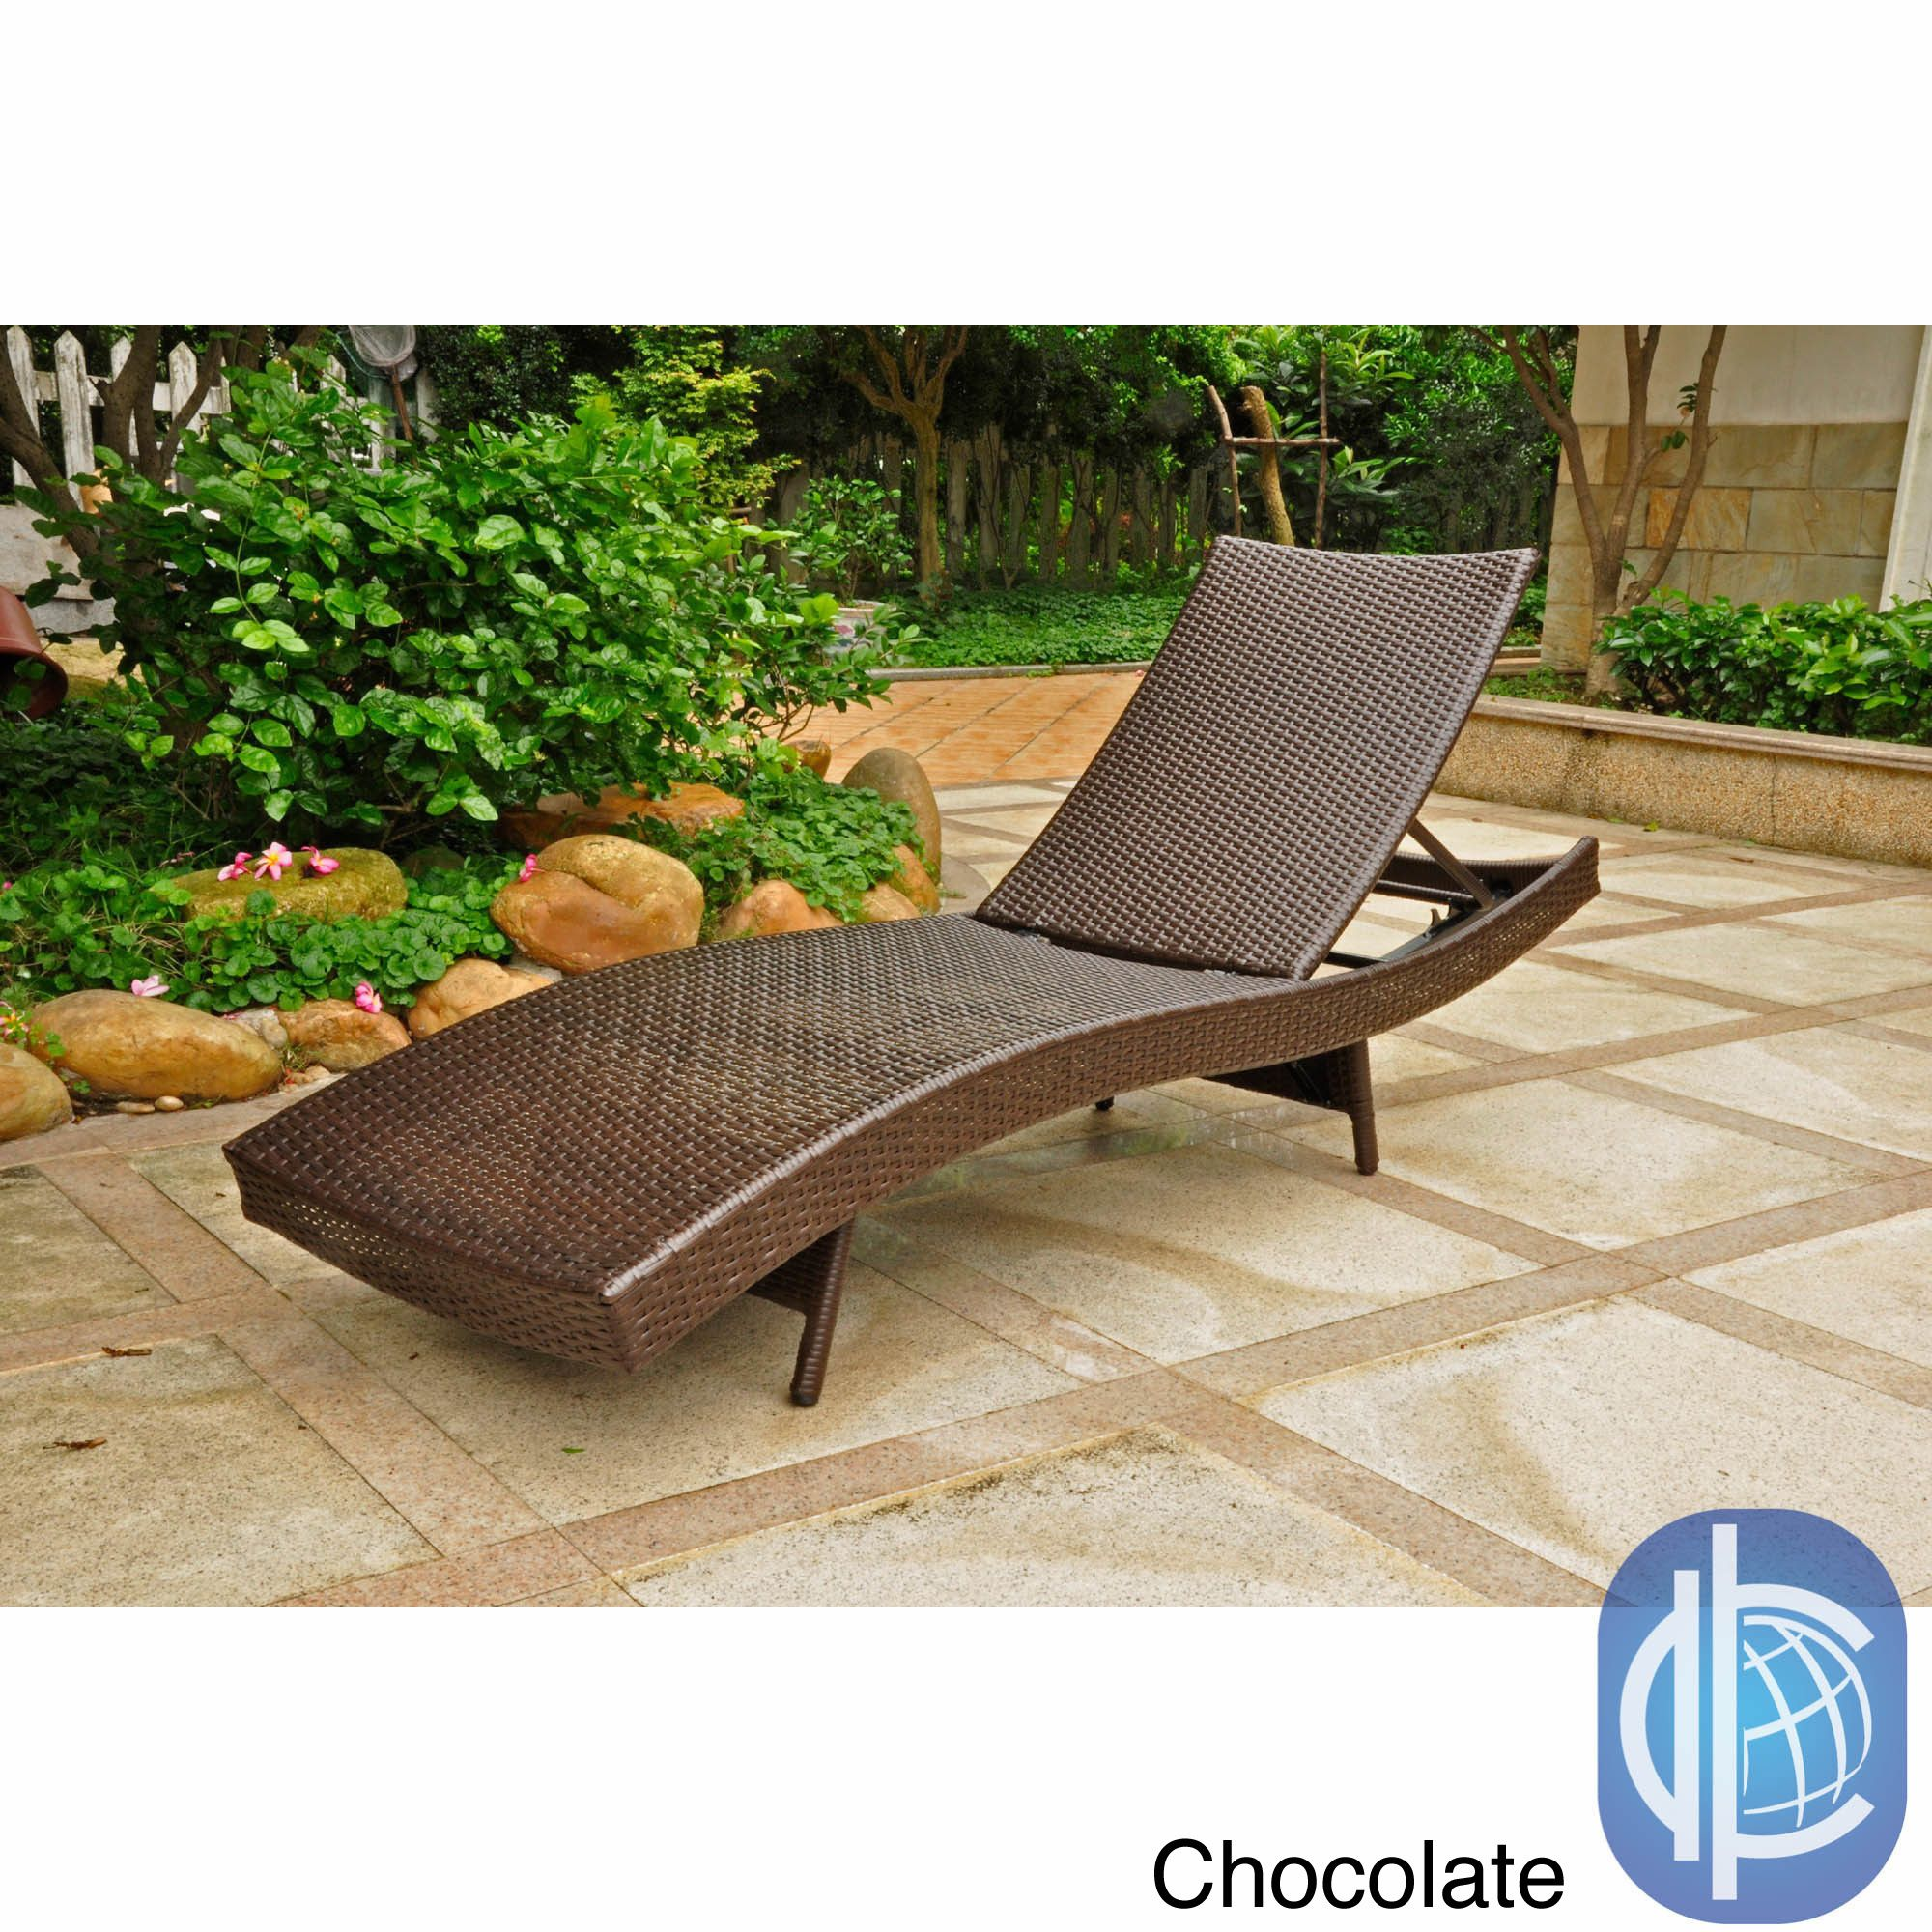 Rest Read Tan Or Simply Lounge Away The Day In Comfort On The